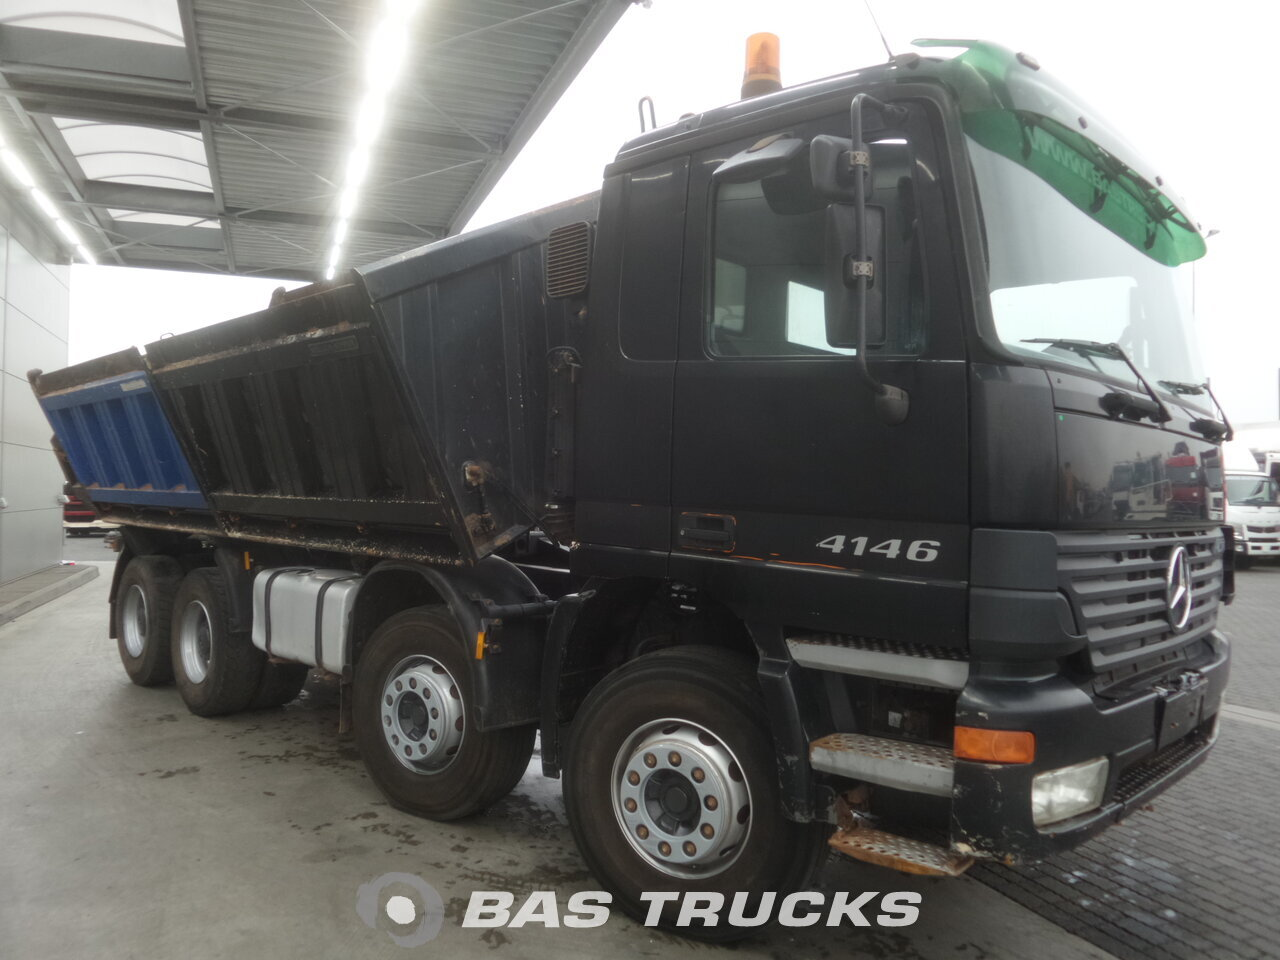 mercedes actros 4146 k lkw euro 3 22600 bas trucks. Black Bedroom Furniture Sets. Home Design Ideas